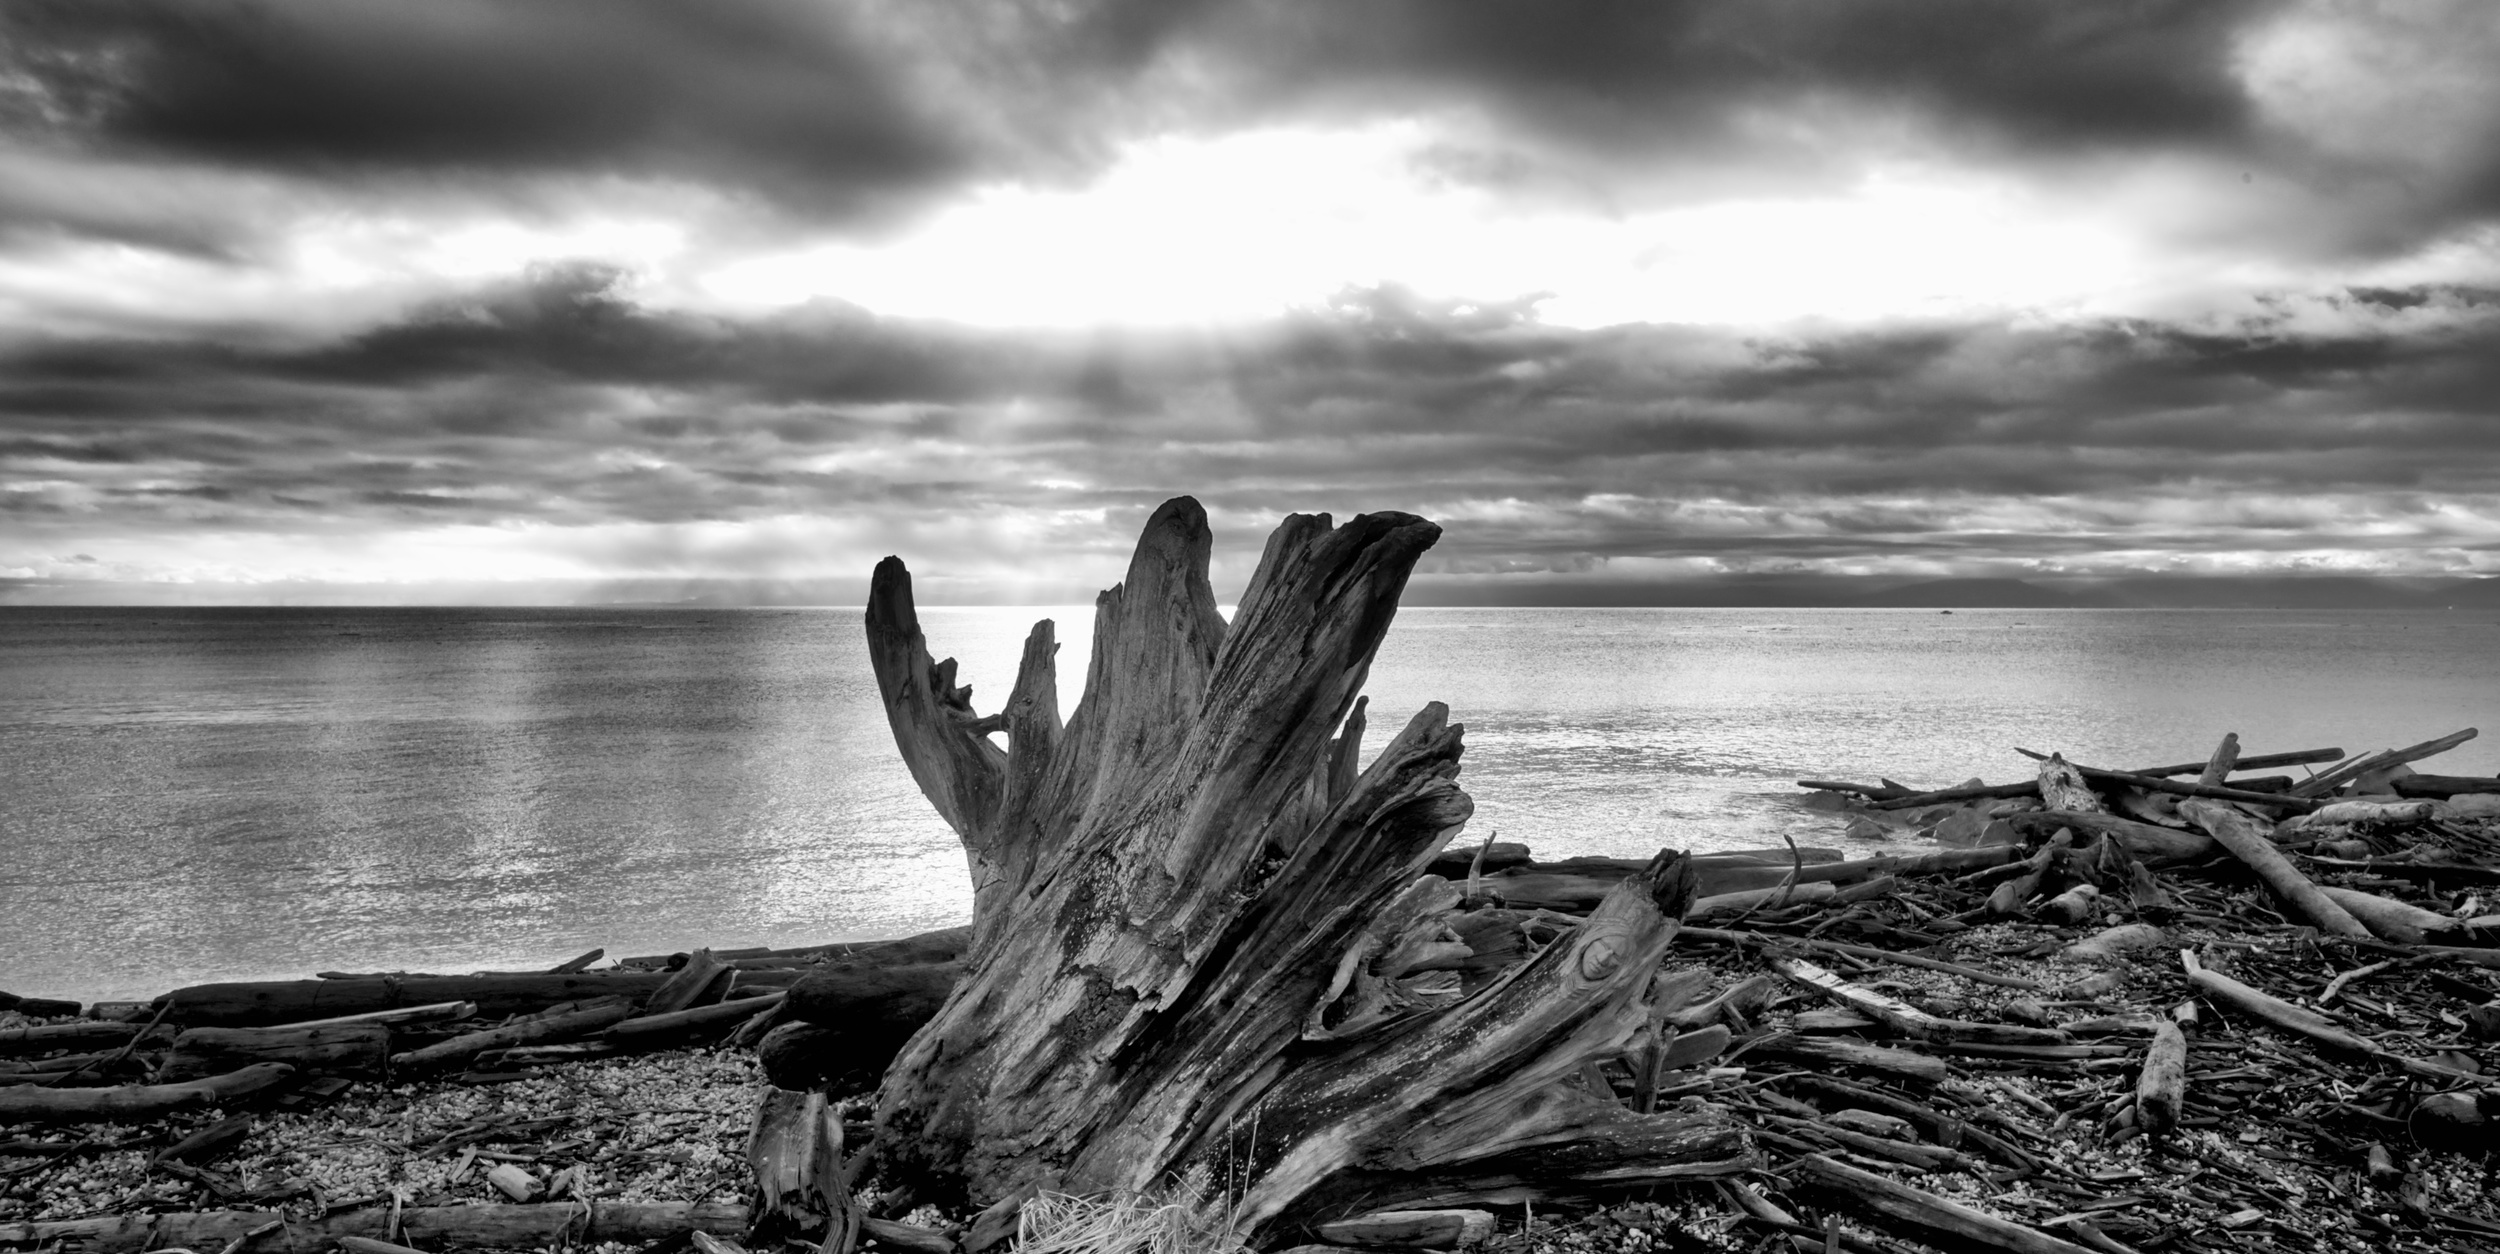 A driftwood stump looms over a silvery sea under dramatic skys. Fuji X-E2 XF 14mm at f/11 1/125 ISO 400